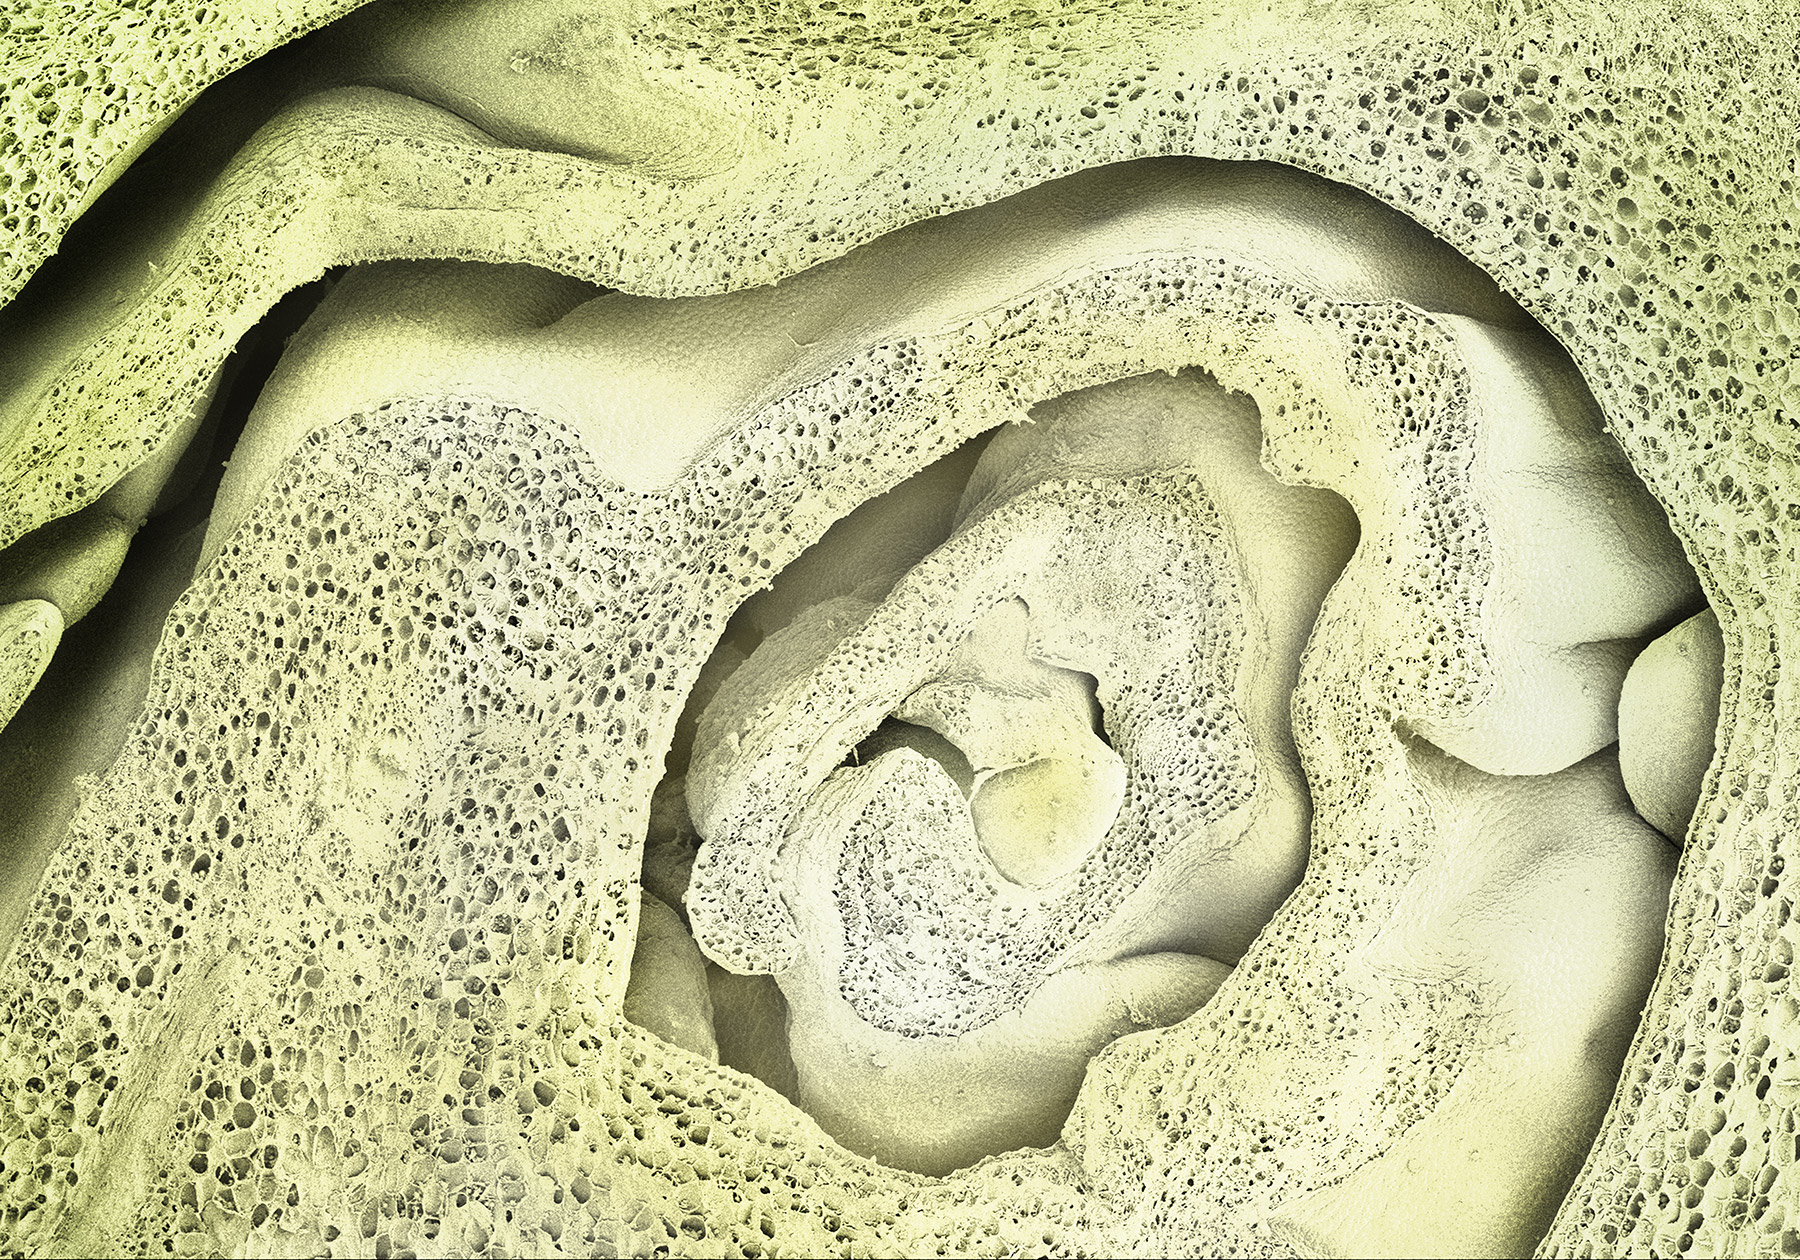 terra cibus no.15: brussel sprout  110x magnification